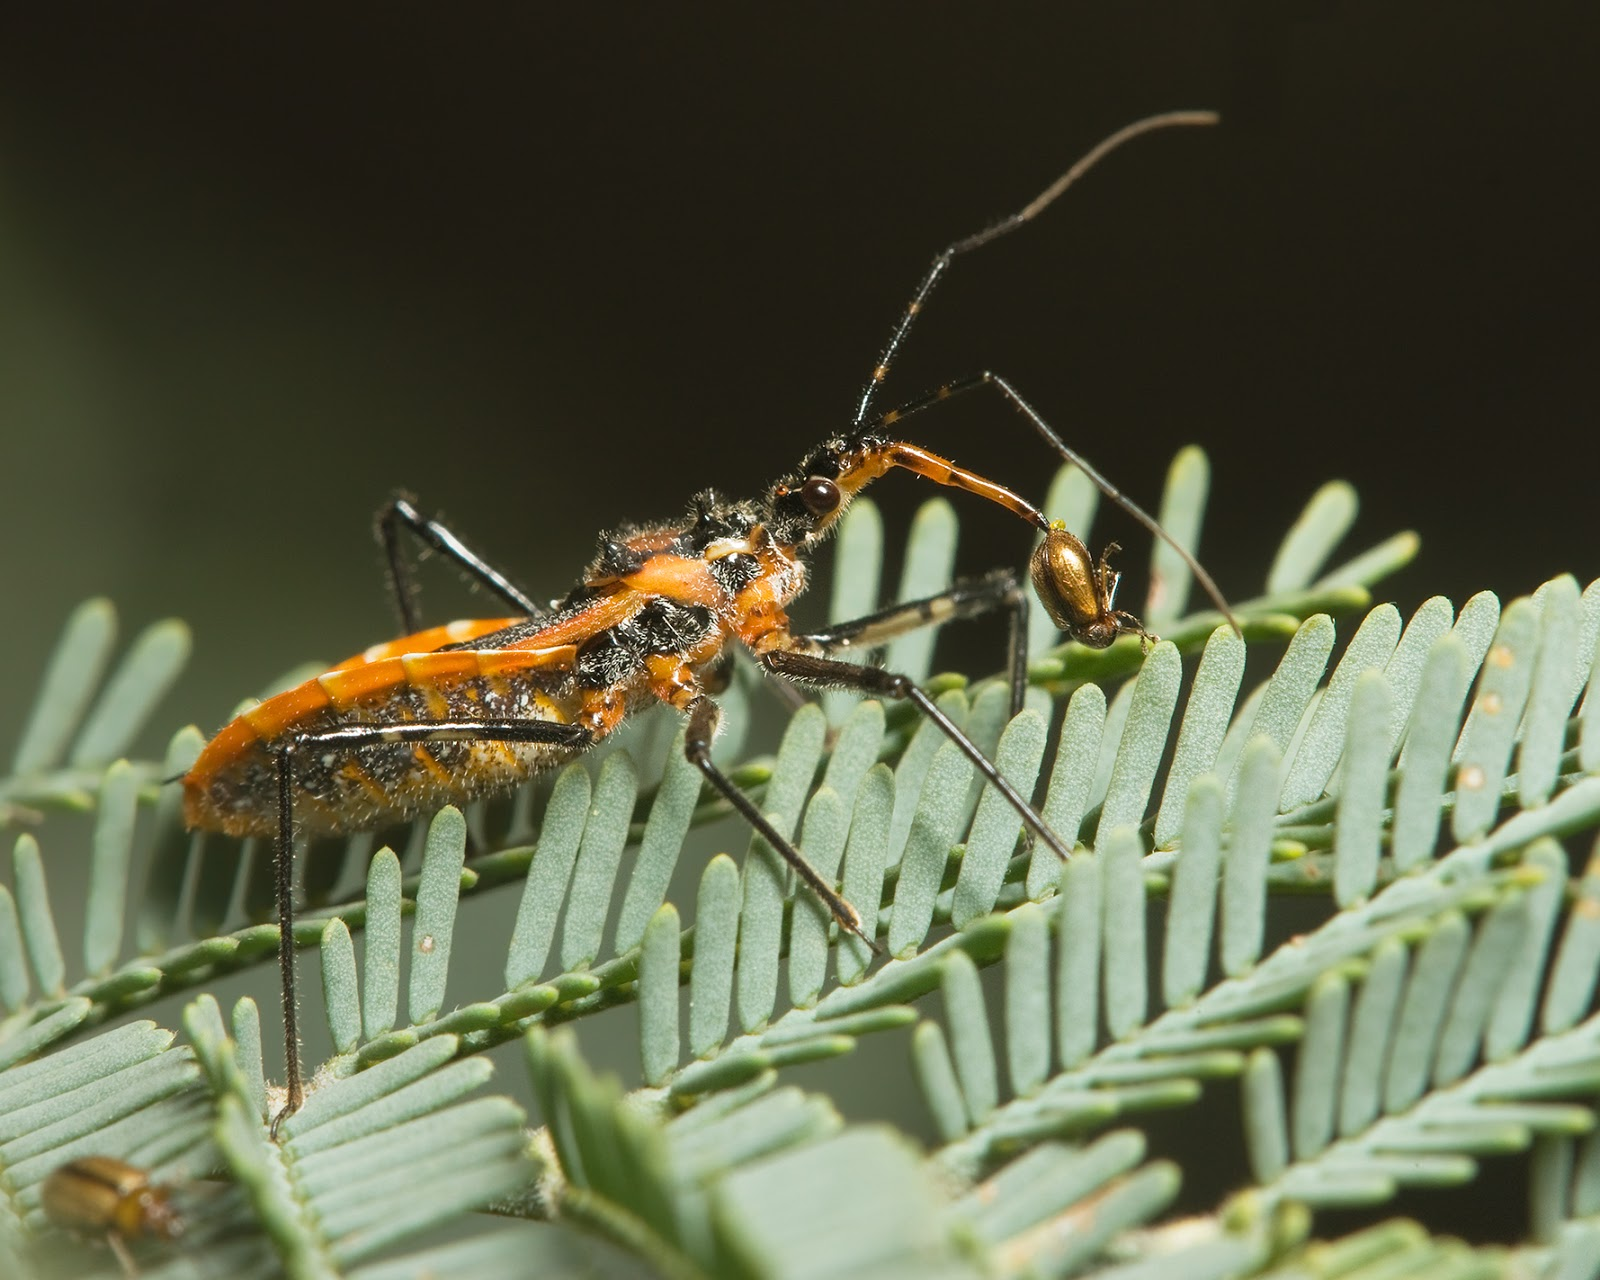 Insects: Gminatus australis with Beetle